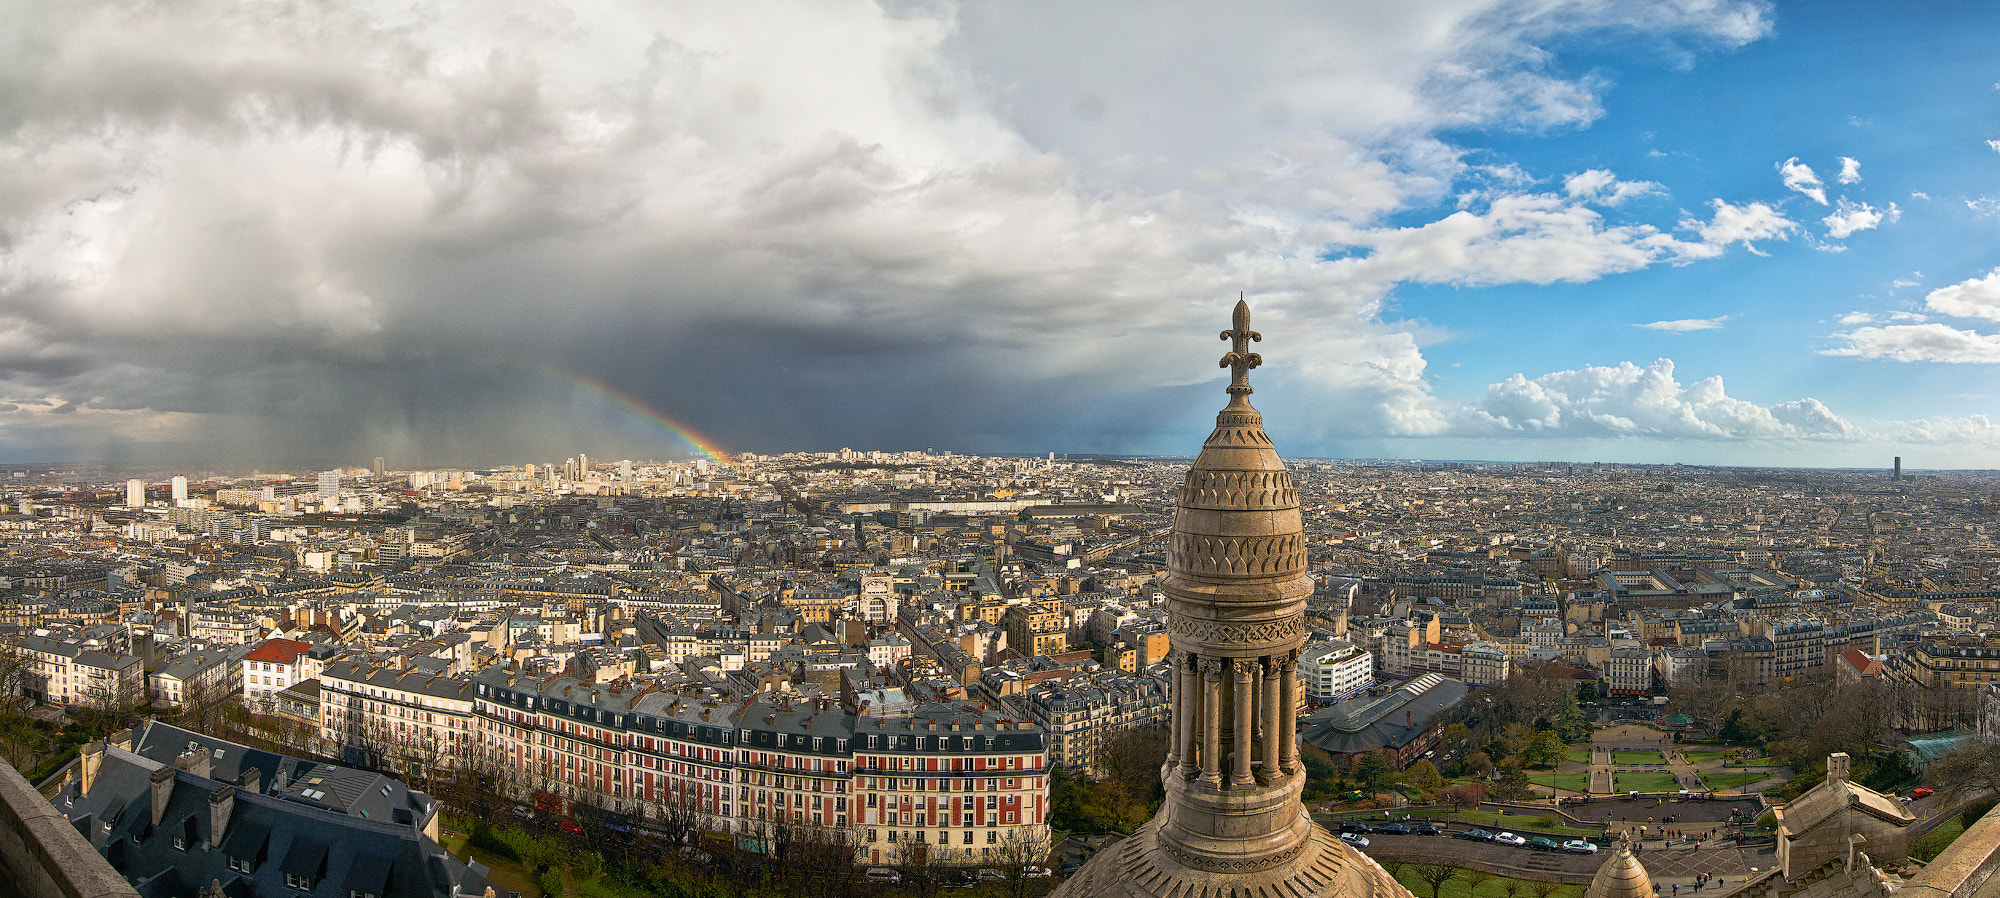 Photograph Paris weather by Alexei Zaripov on 500px